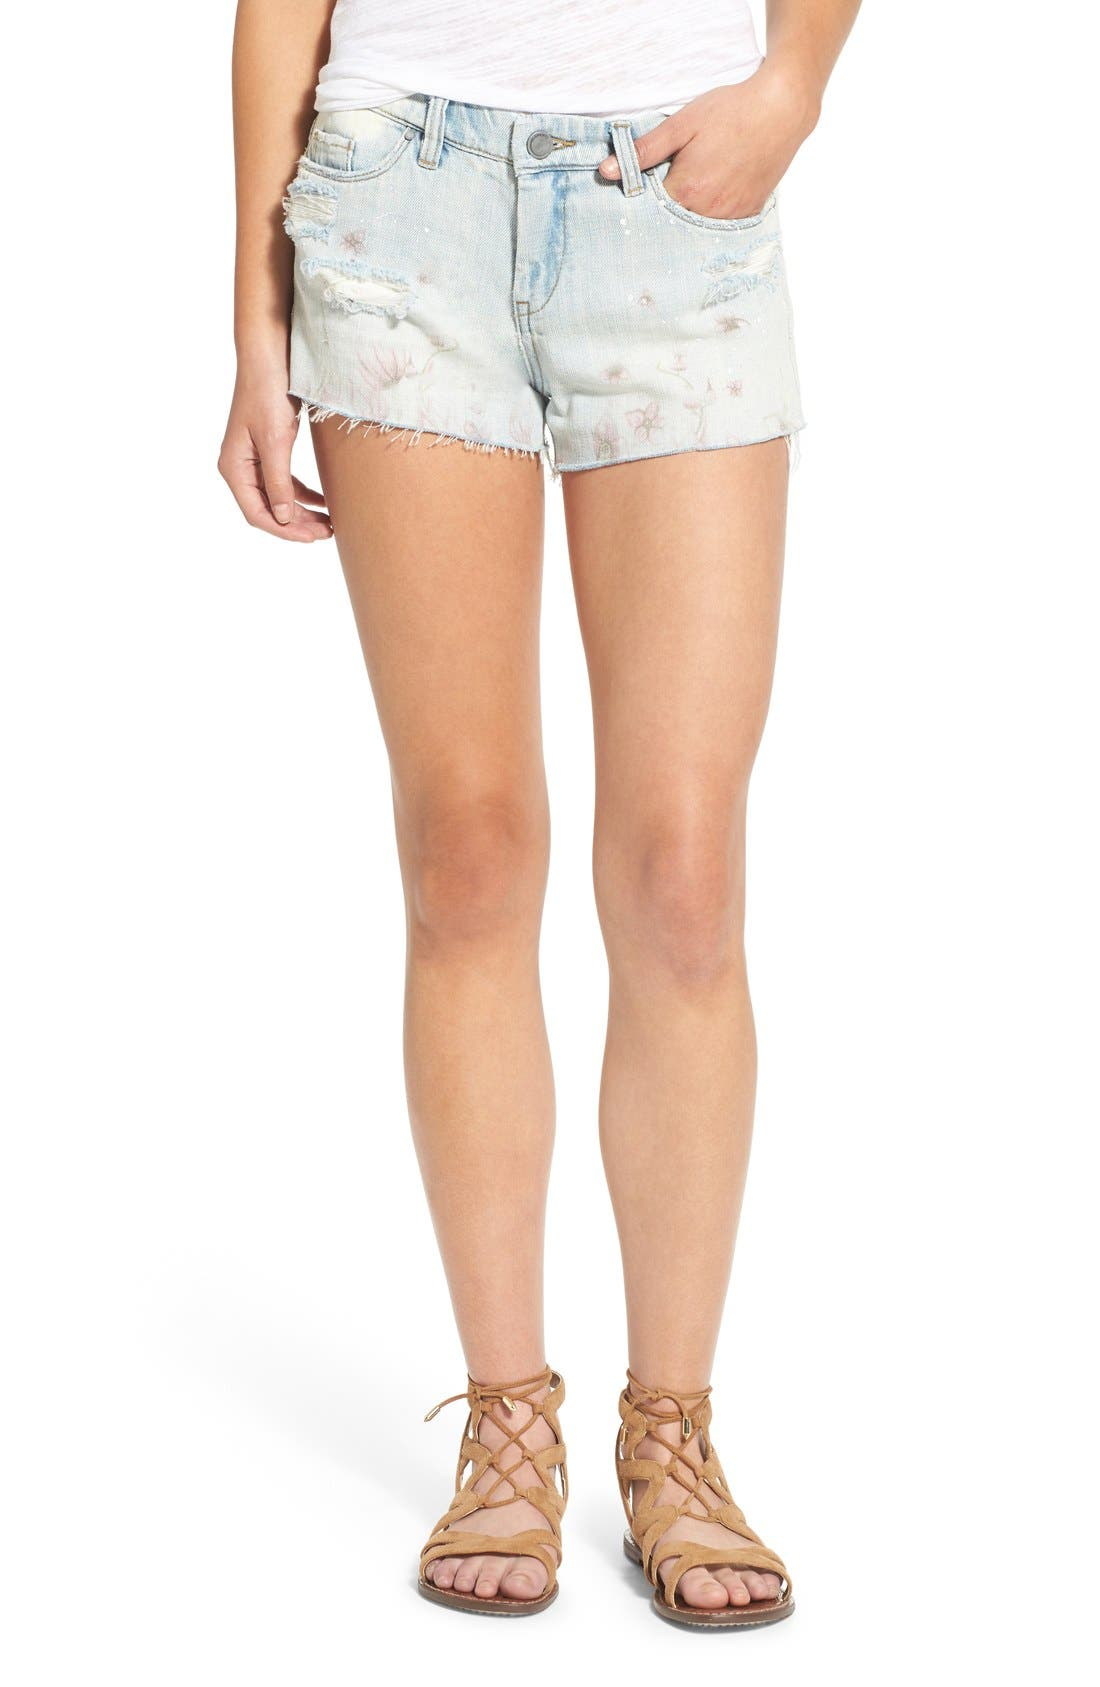 Alternate Image 1 Selected - BLANKNYC 'Kitty Flower' Distressed Cutoff Denim Shorts